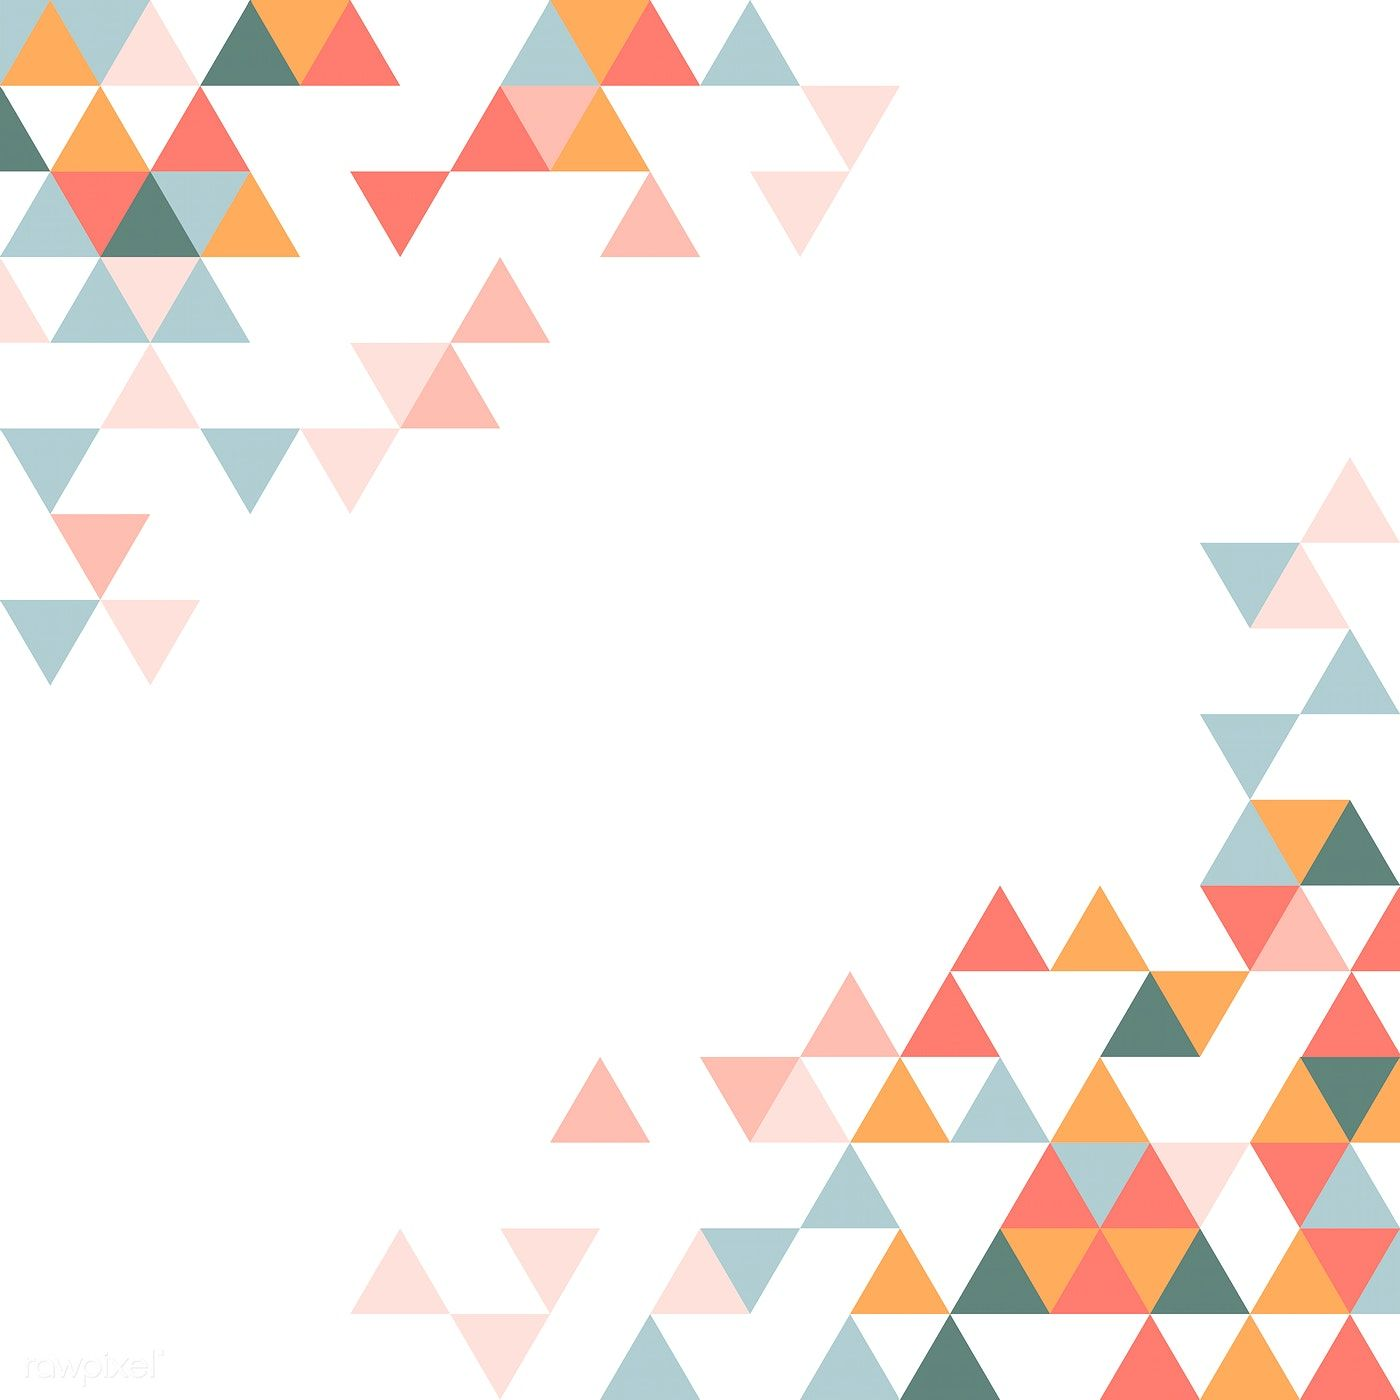 Colorful Triangle Patterned On White Background Free Image By Rawpixel Com Manotang Triangle Pattern Graphic Design Pattern Powerpoint Background Design